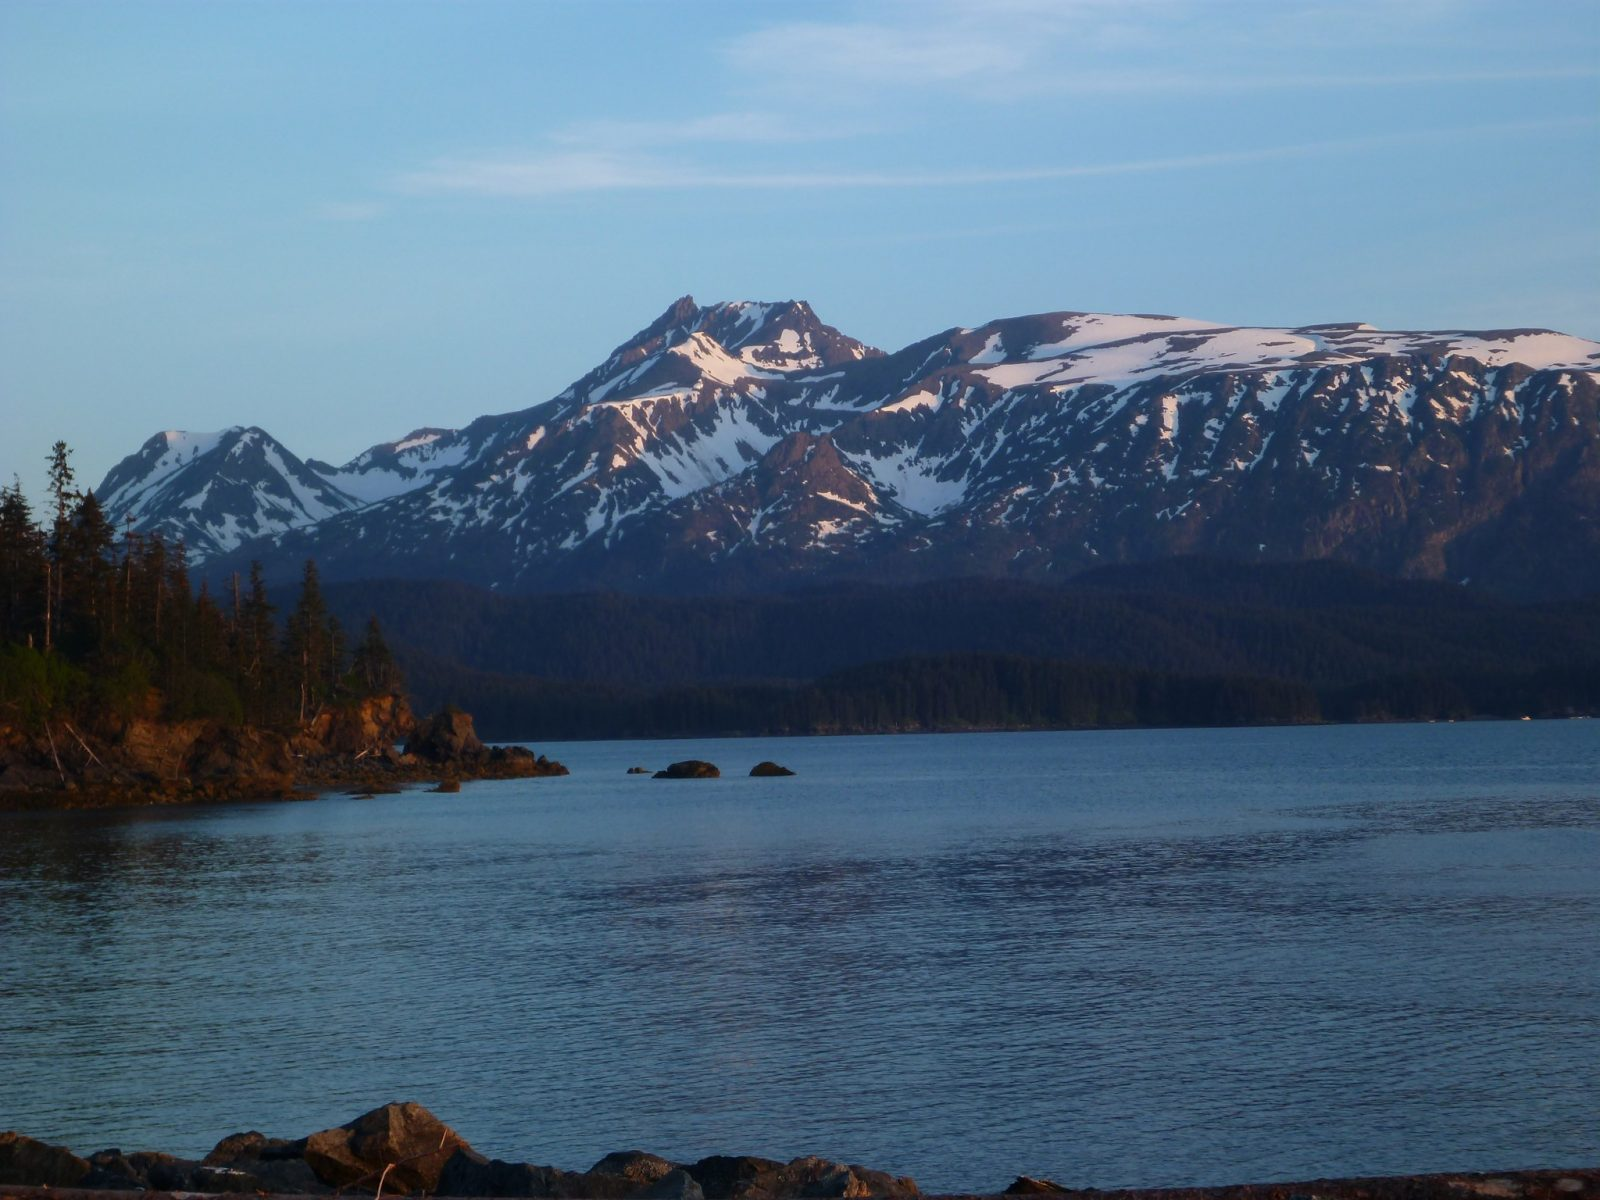 Evening sun hits mountains with lingering snow across a bay. In the foreground are trees and a rocky shore